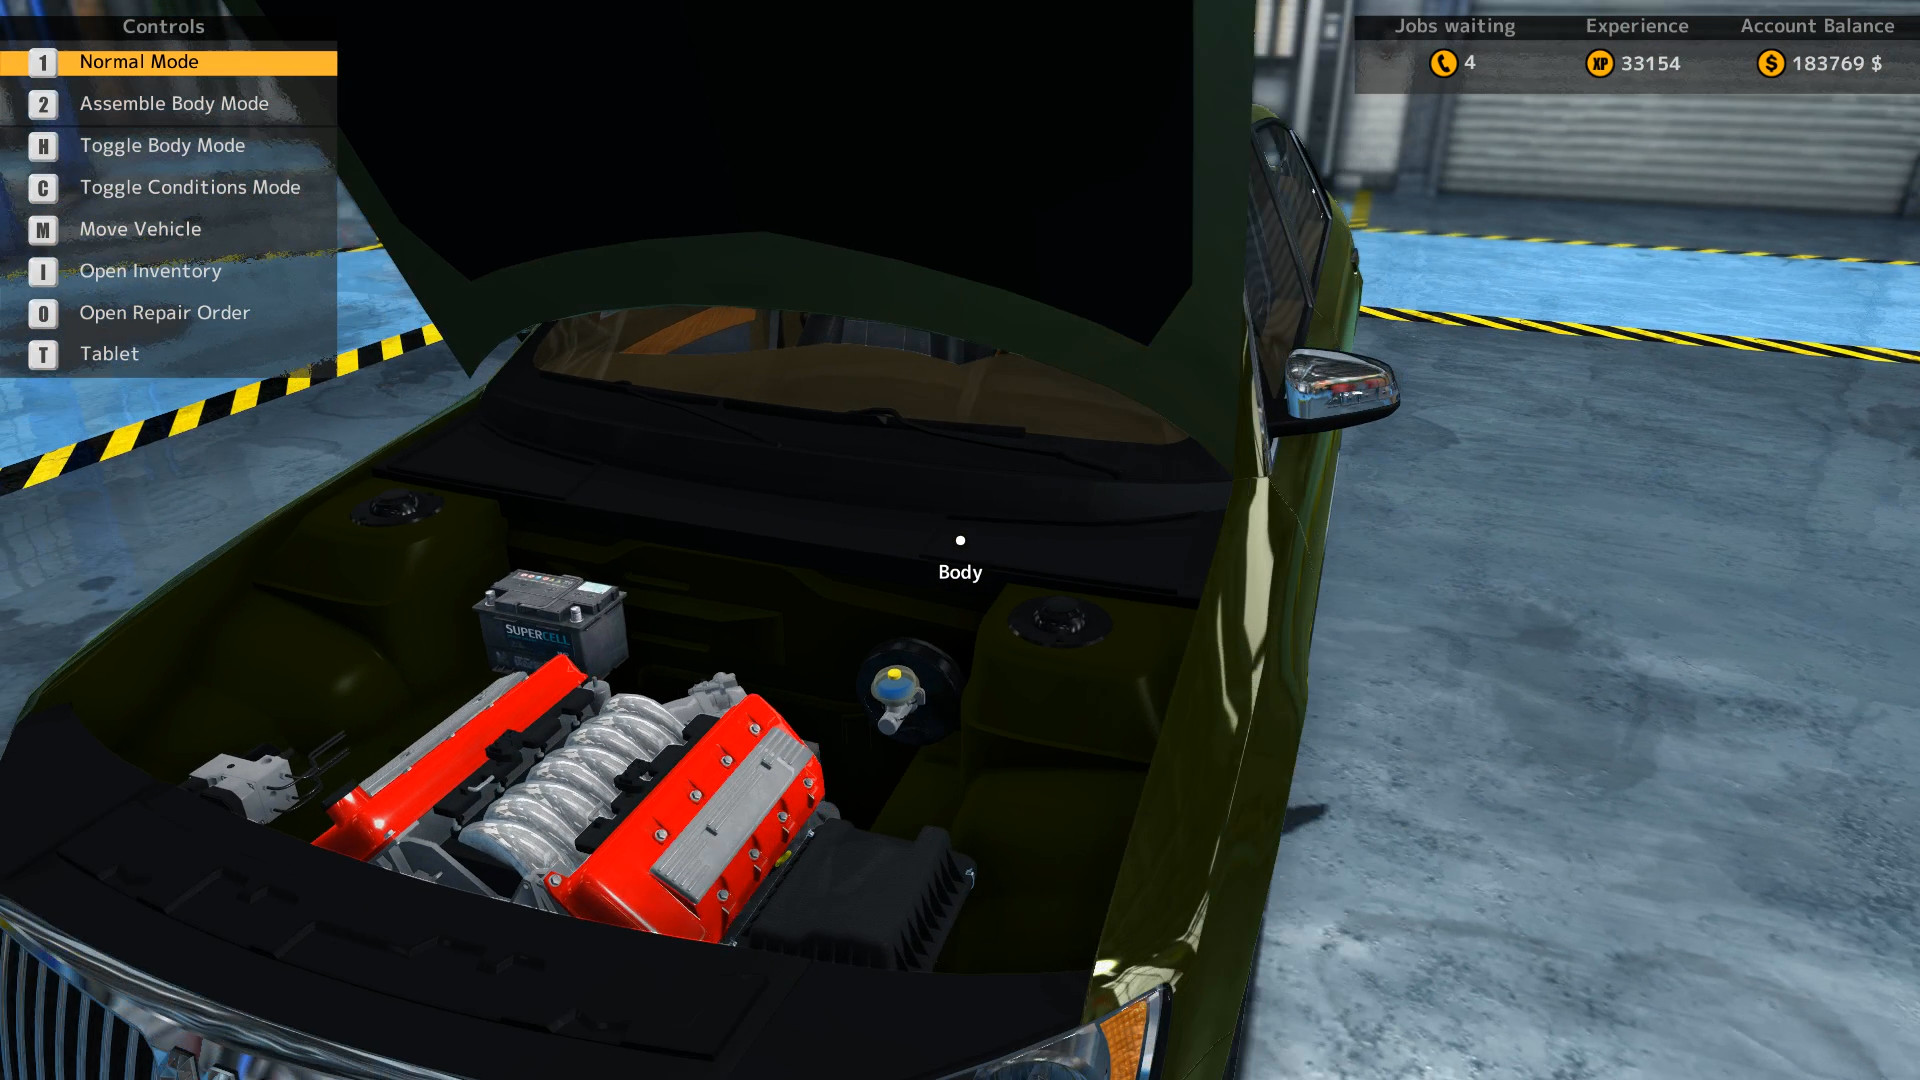 Here we see a mint condition engine compartment in the view of the Mayen M8 from Car Mechanic Simulator 2015. This image was taken after a complete rebuild of the car.